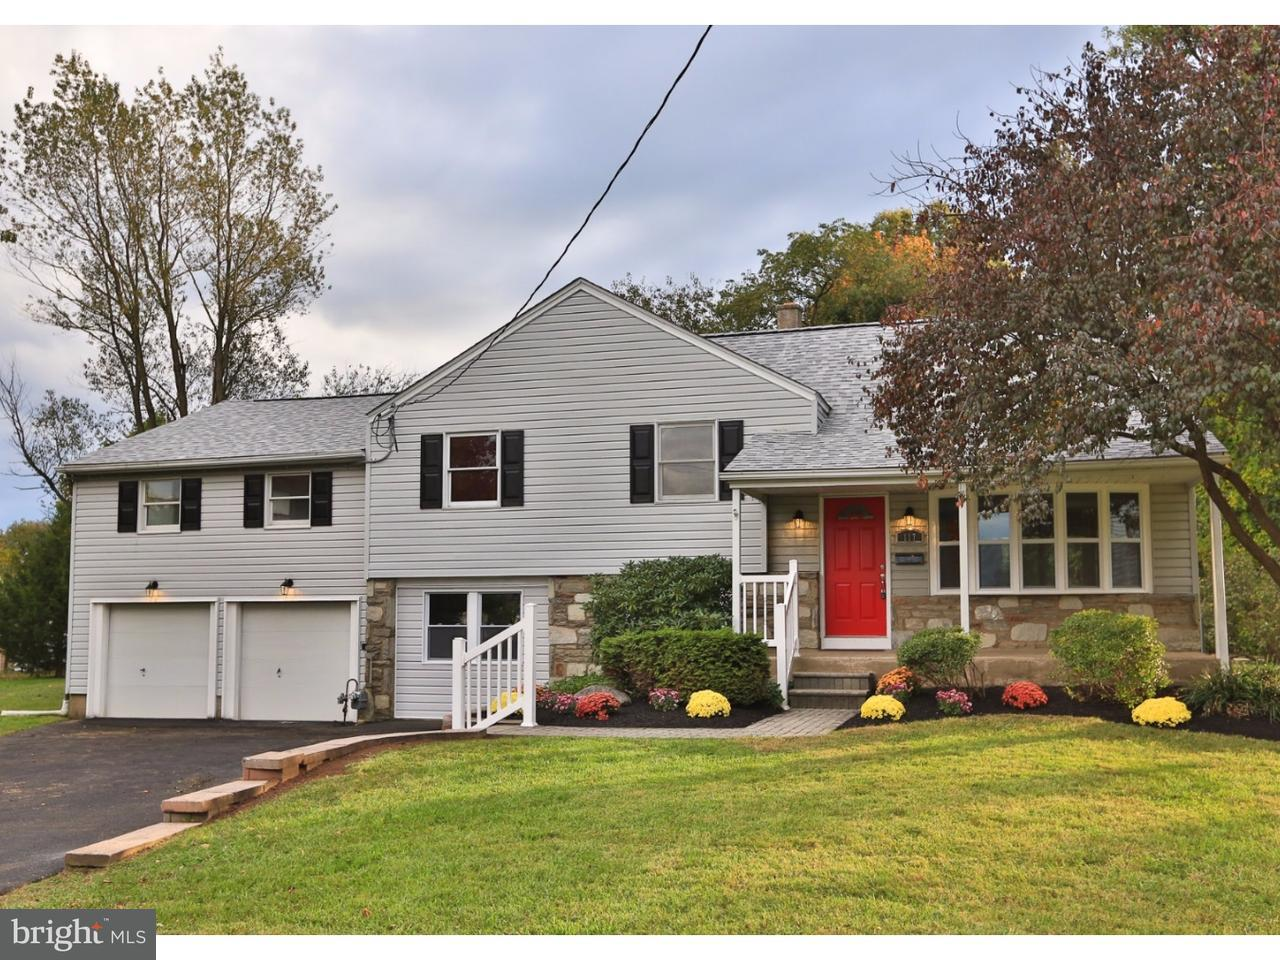 Single Family Home for Sale at 117 PARKWAY Road Hatboro, Pennsylvania 19040 United States